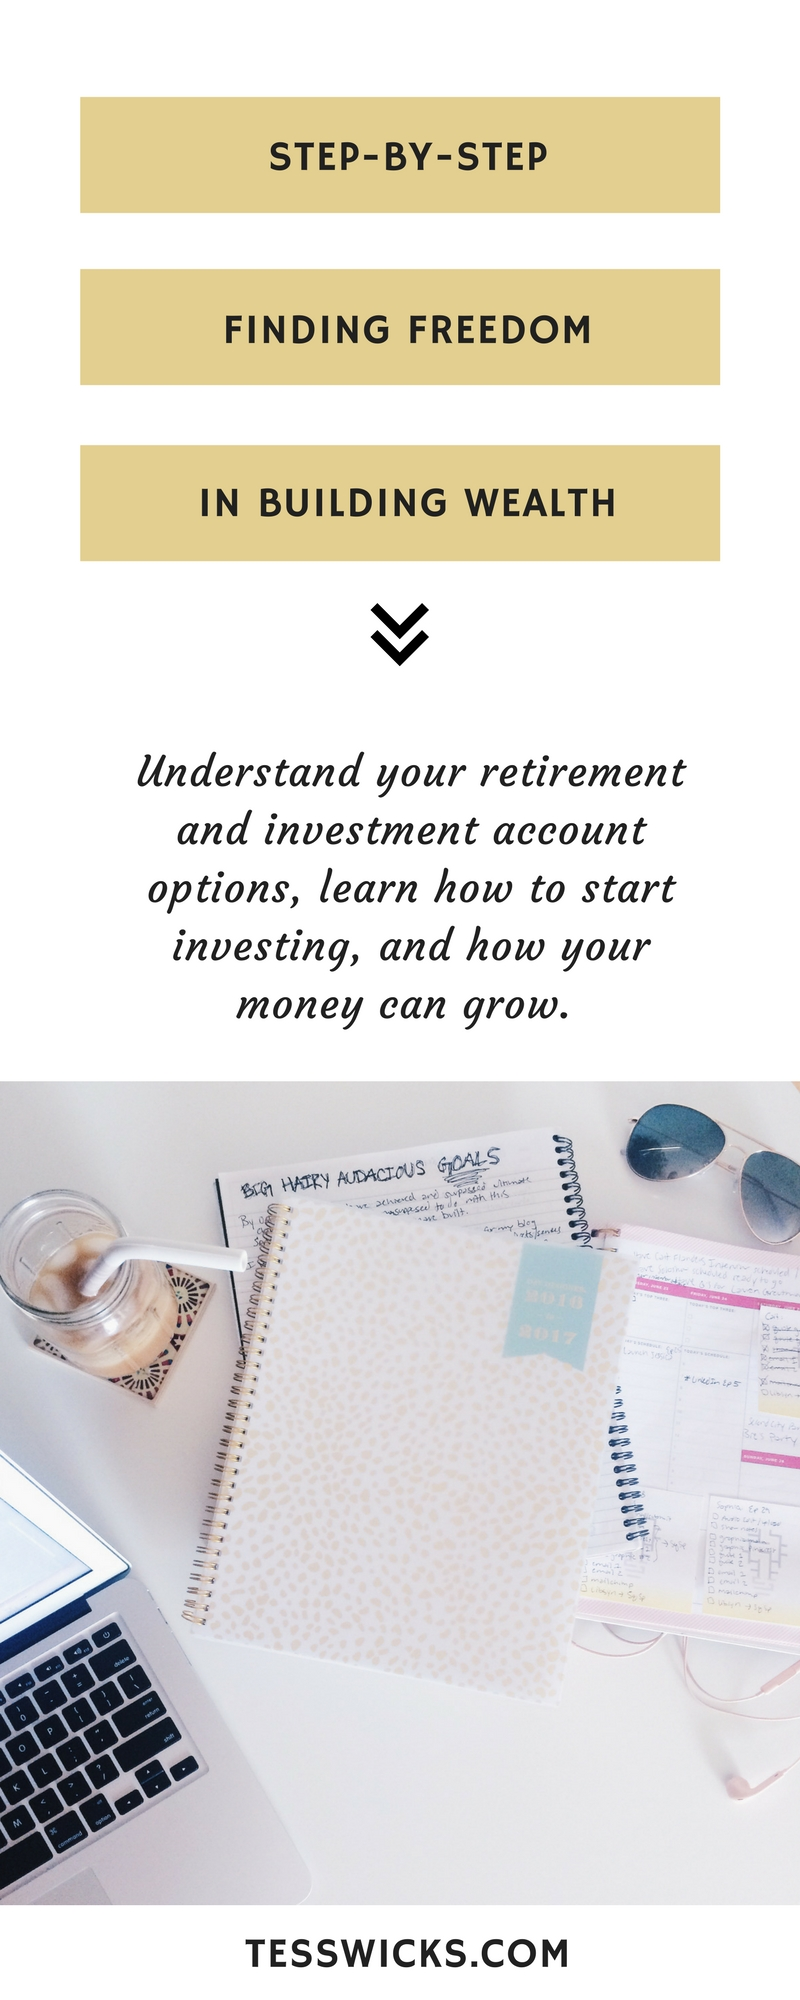 Learn how to build wealth and find freedom by investing in retirement and other investment accounts. This step-by-step interview will help you understand how your money can grow.